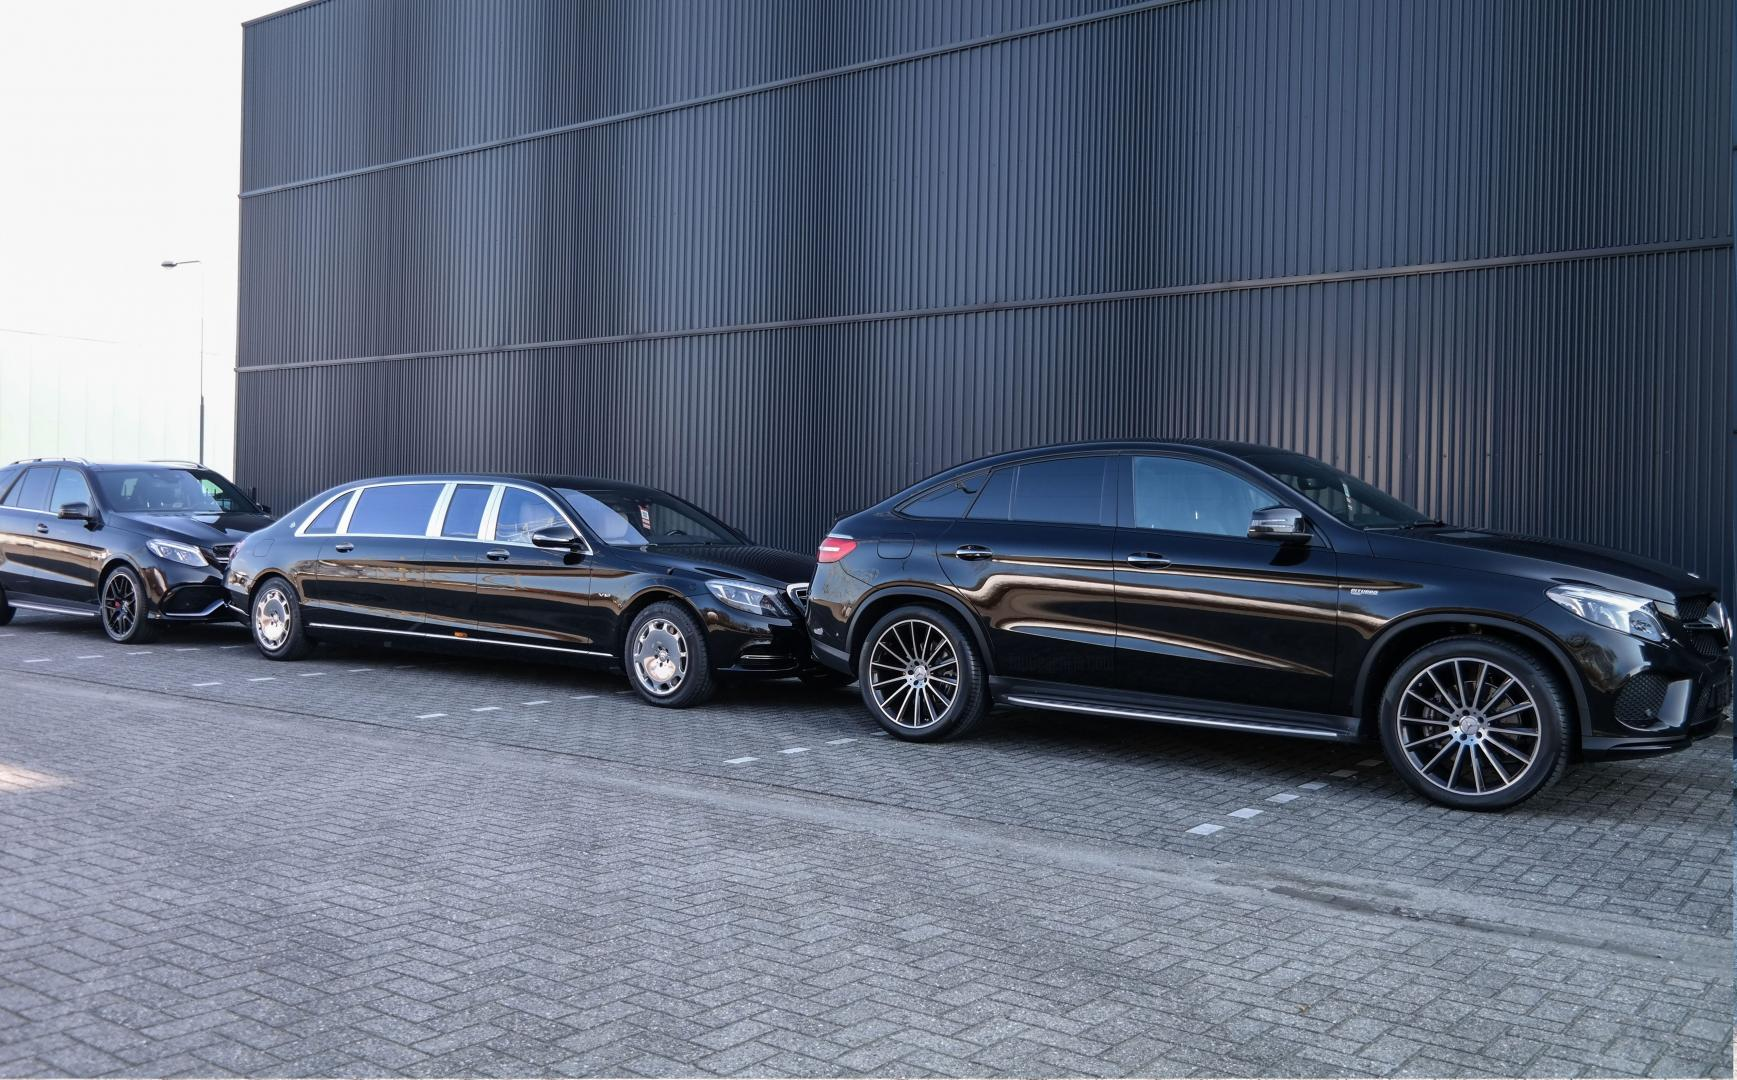 Mercedes-Maybach S 600 Pullman AMG GLE Coupé